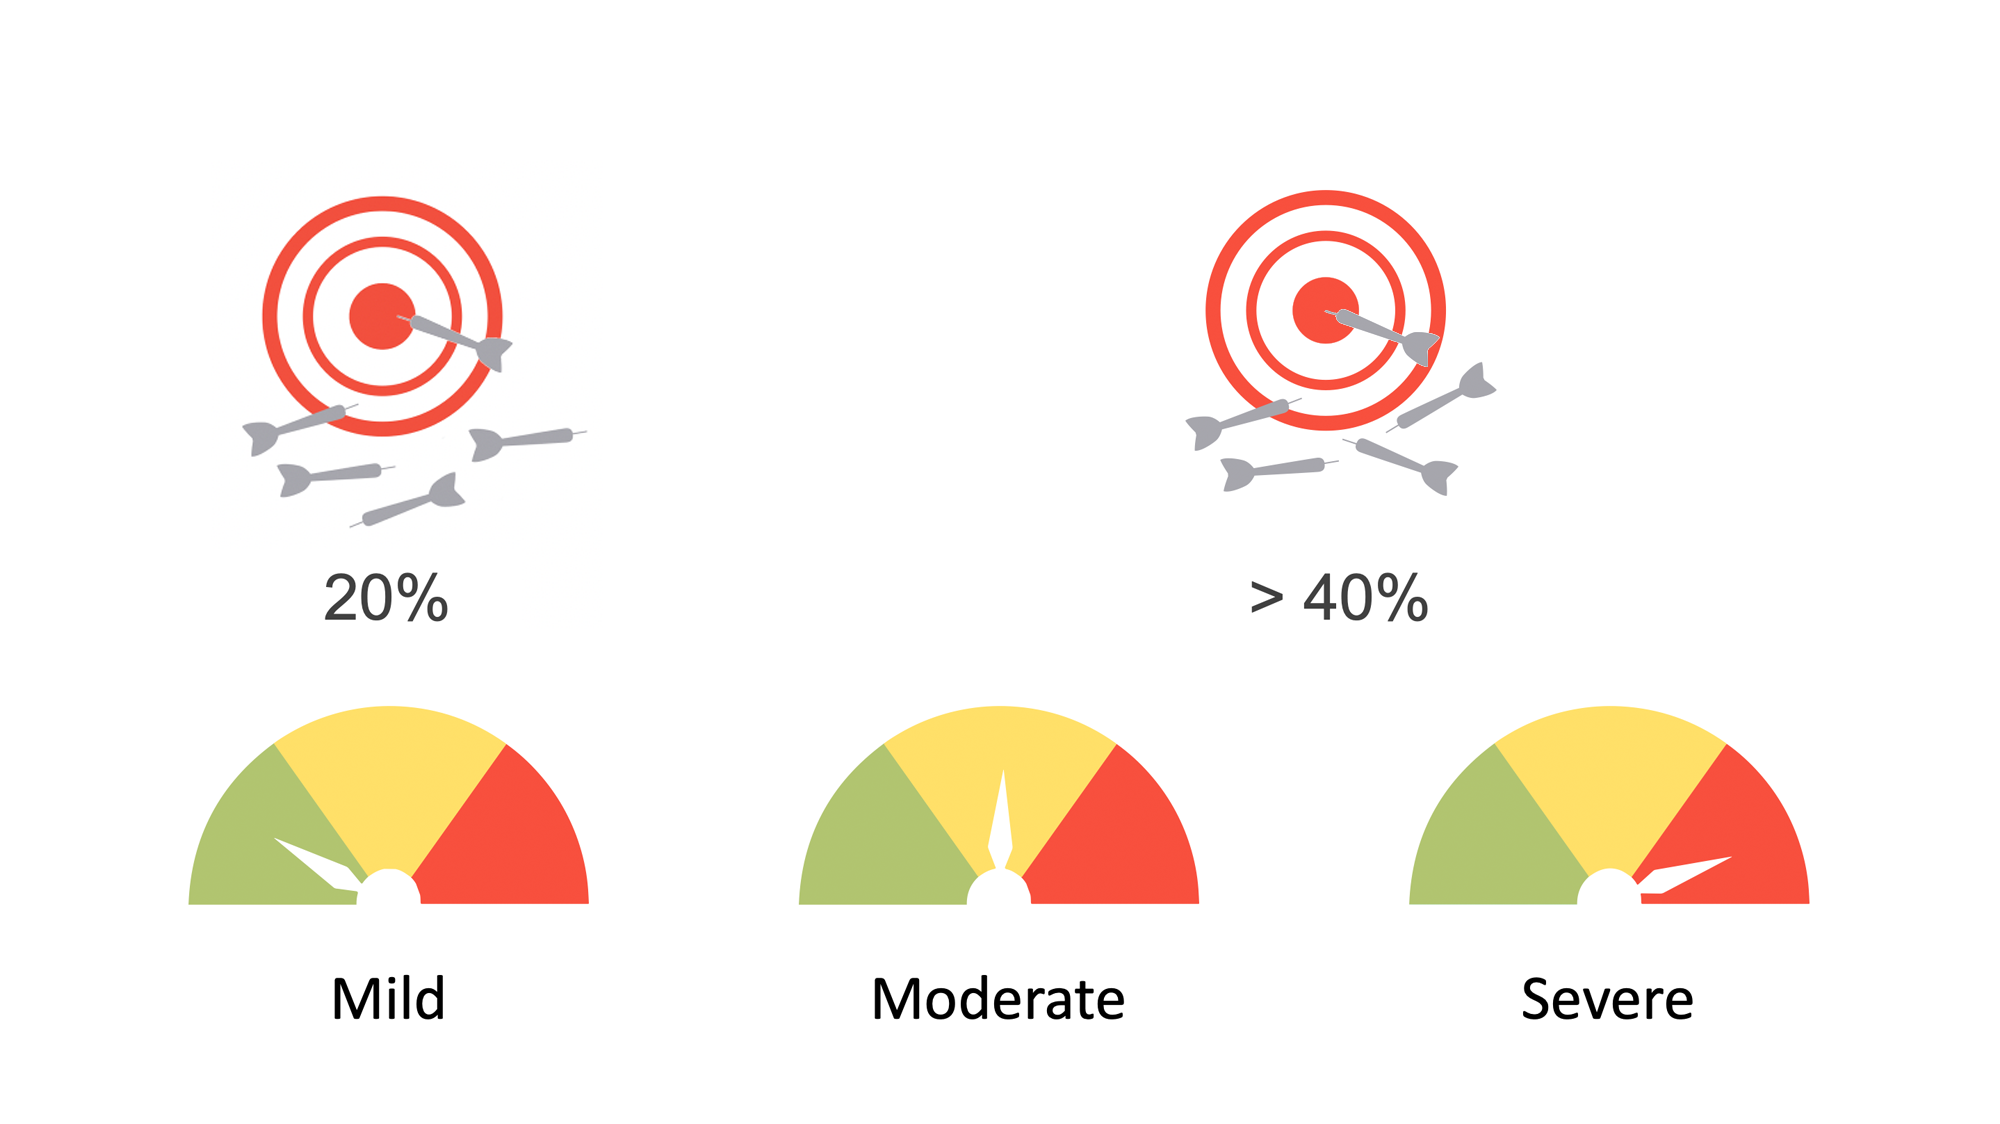 Severity indicators for mild moderate and severe ARDS and bullseyes for failure rates. Illustration.